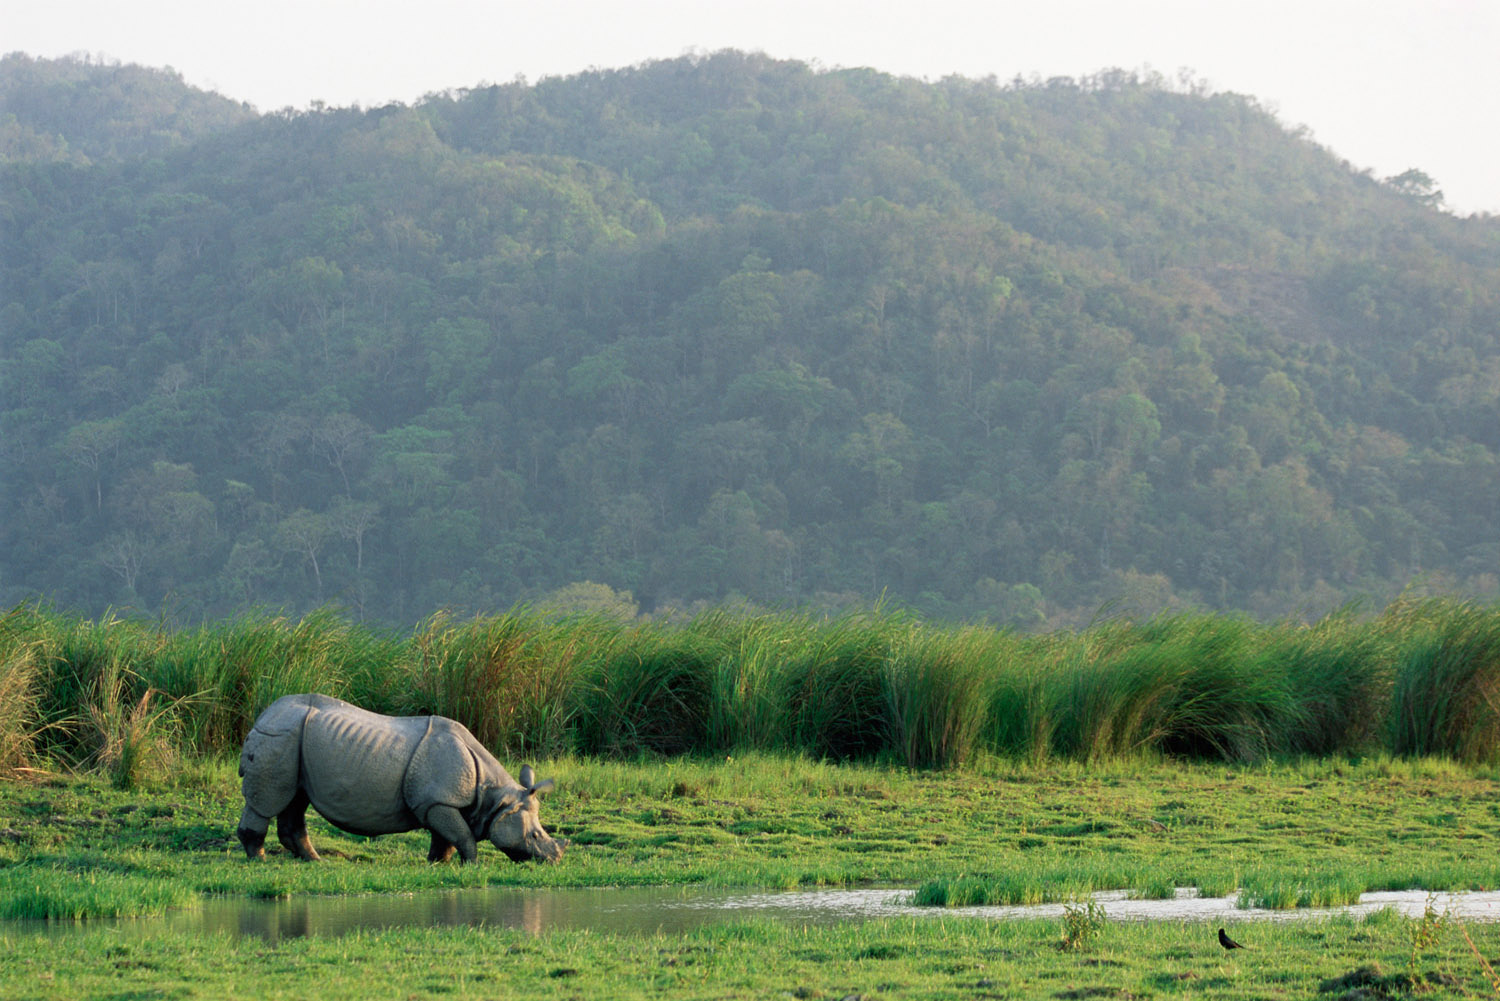 Indian rhinoceros grazing, Kaziranga National Park, Assam, India